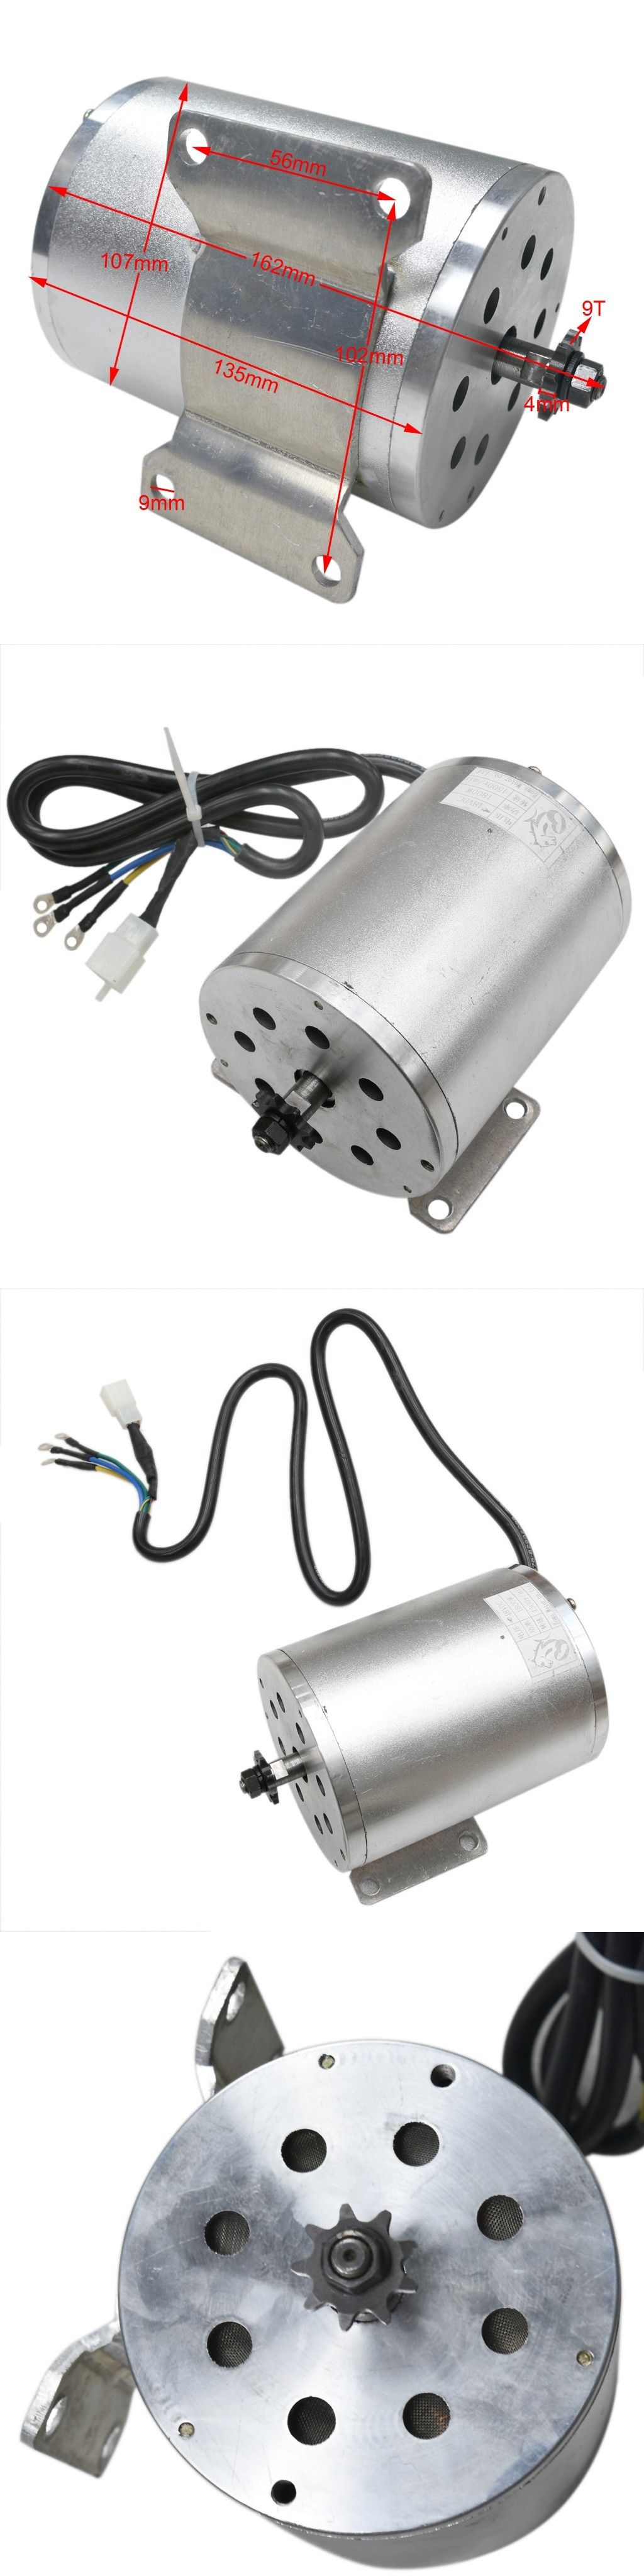 Parts and Accessories 11332: 1800W 48V Brushless Electric Dc Motor Fit E-Bike Go-Kart Quad Tdm -> BUY IT NOW ONLY: $119.9 on eBay!